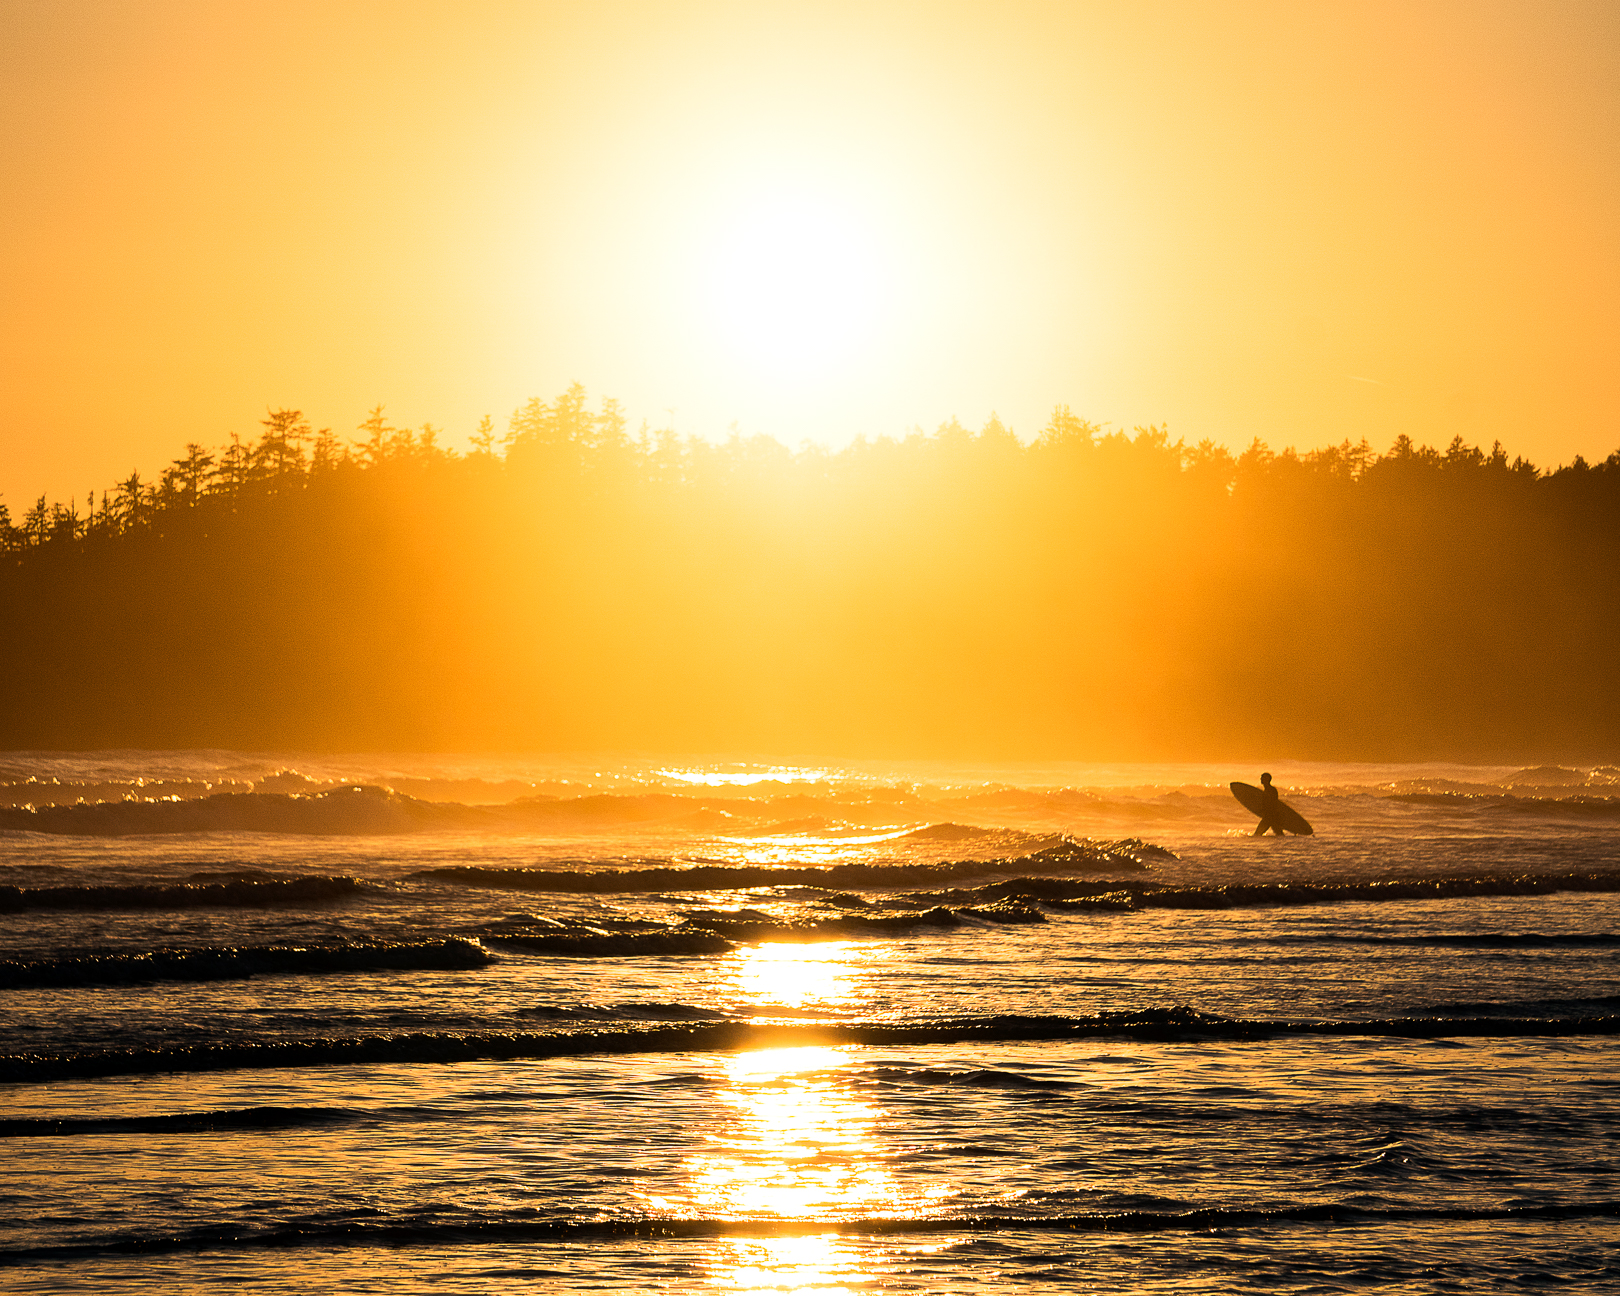 tofino-long-beach-surfing-herron-00940.jpg